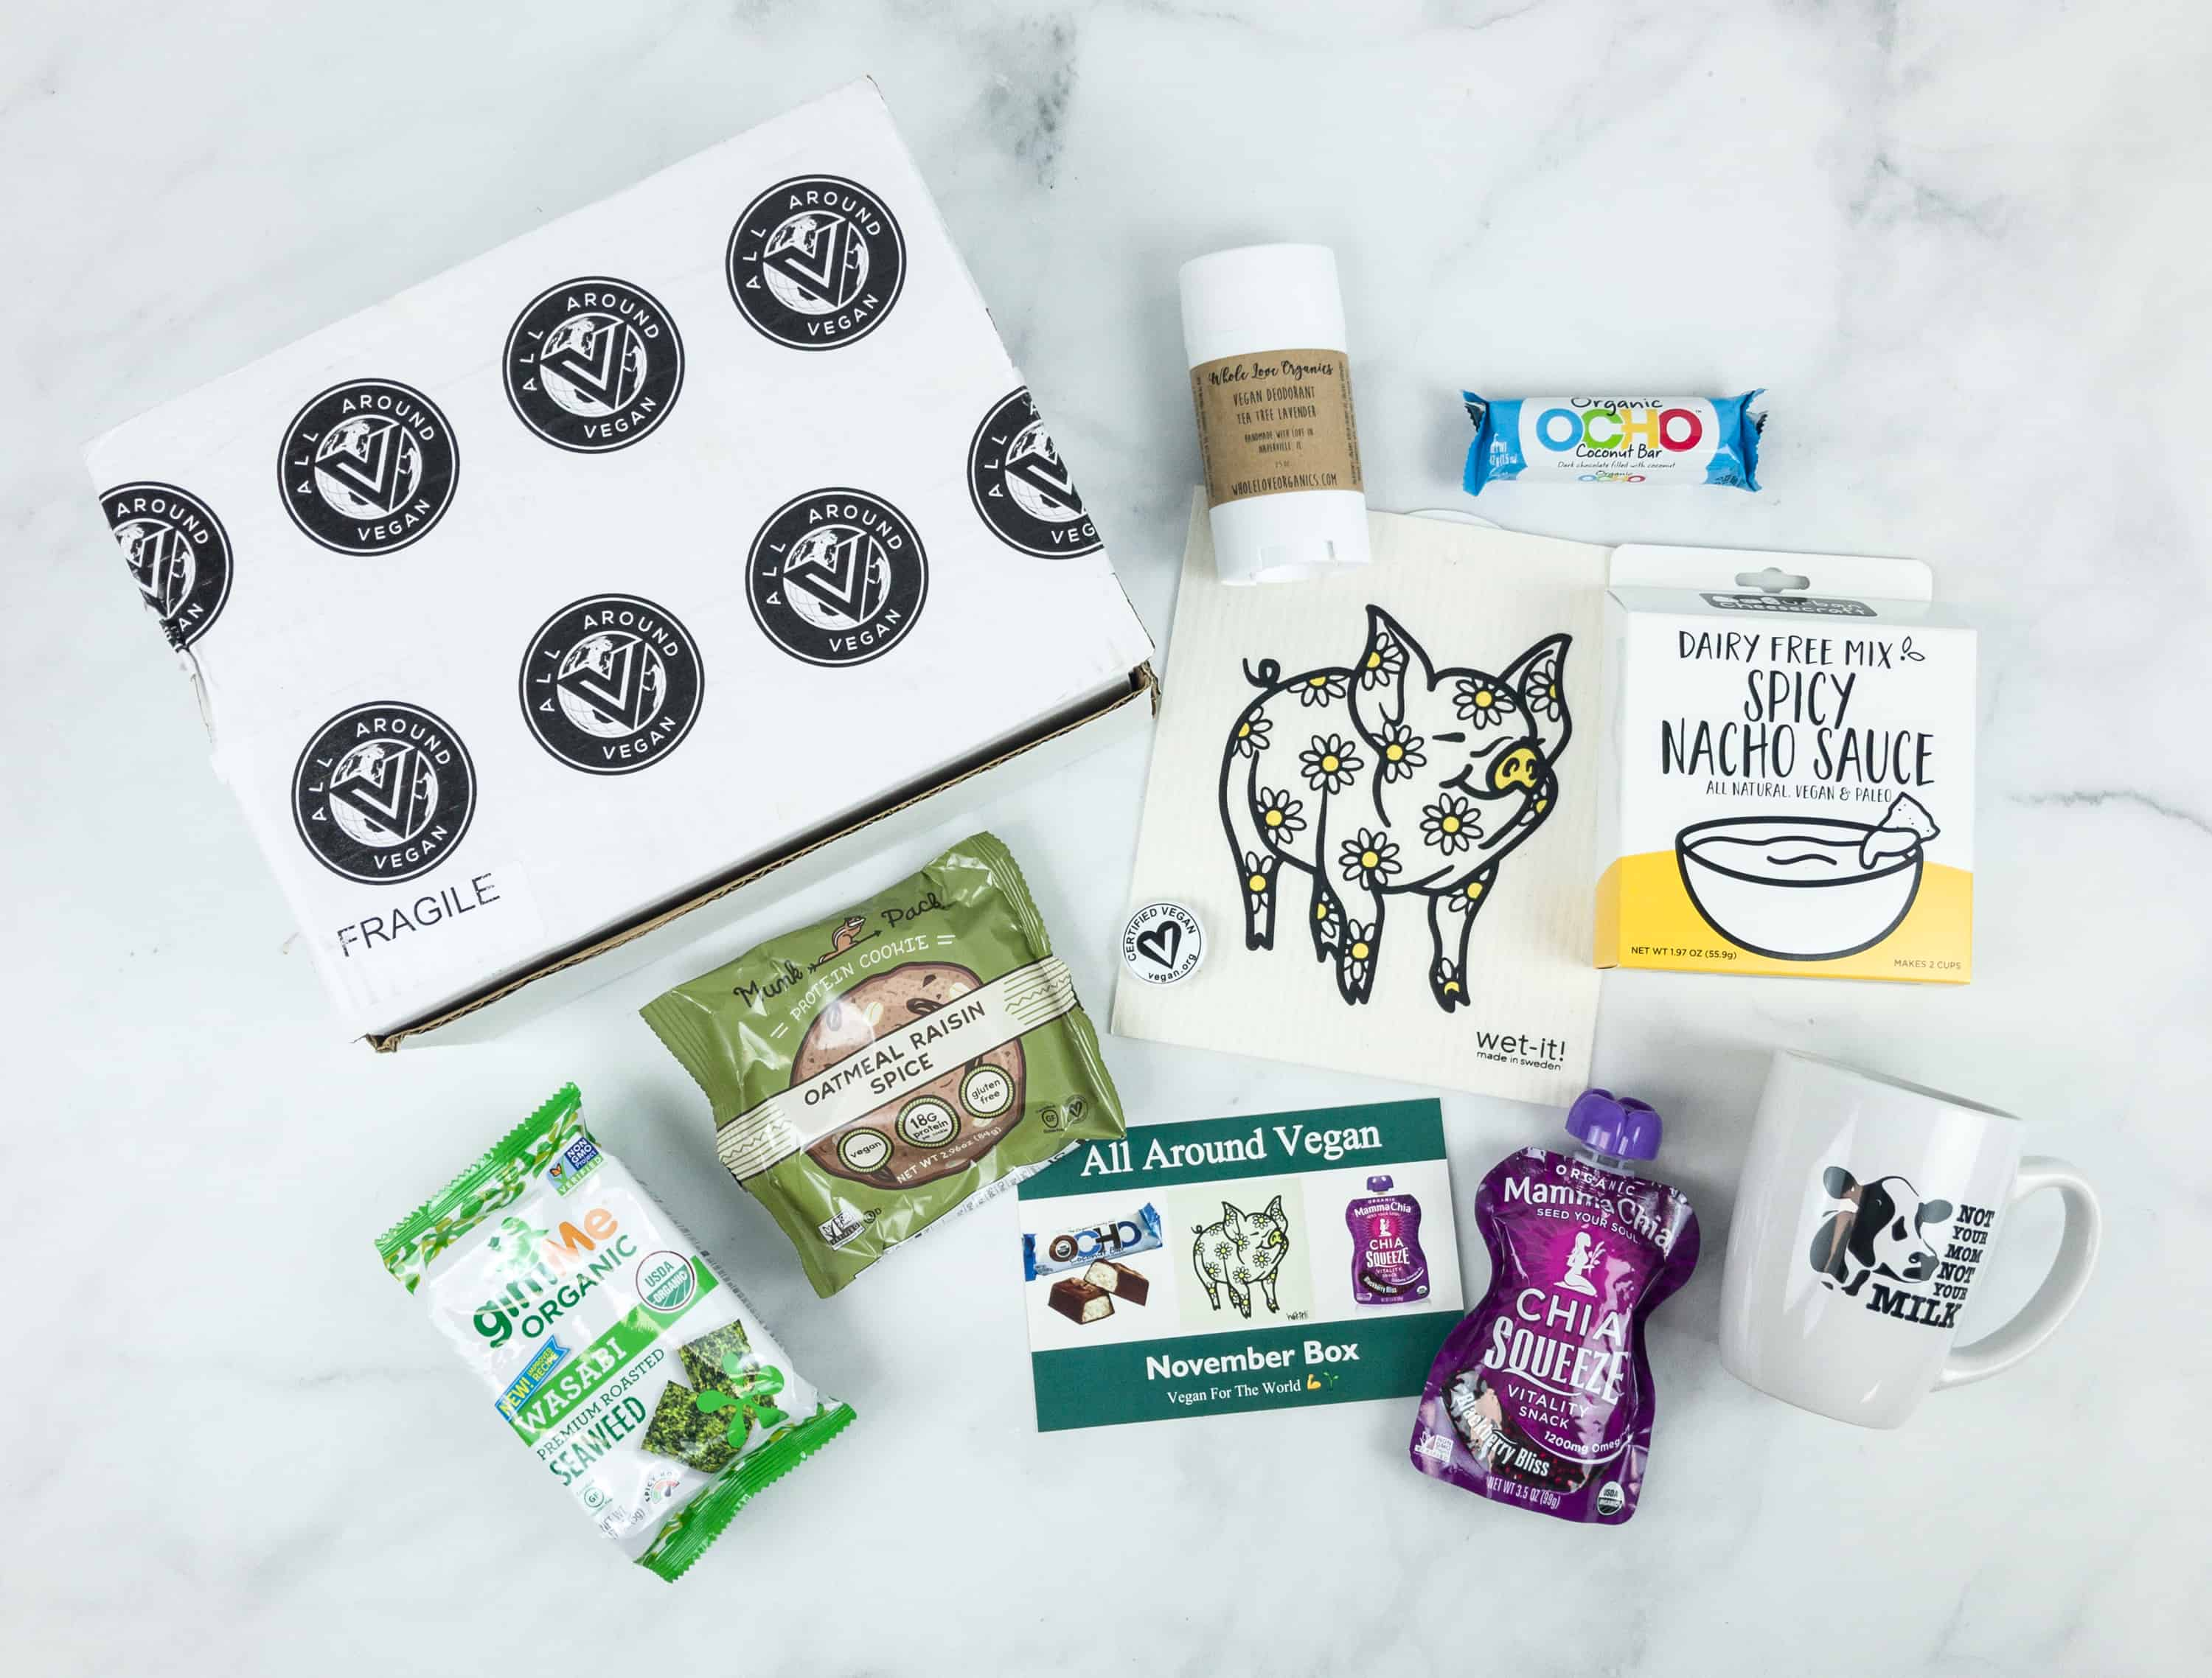 All Around Vegan Box Cyber Monday 2018 Sale! Save Up to 50% off!